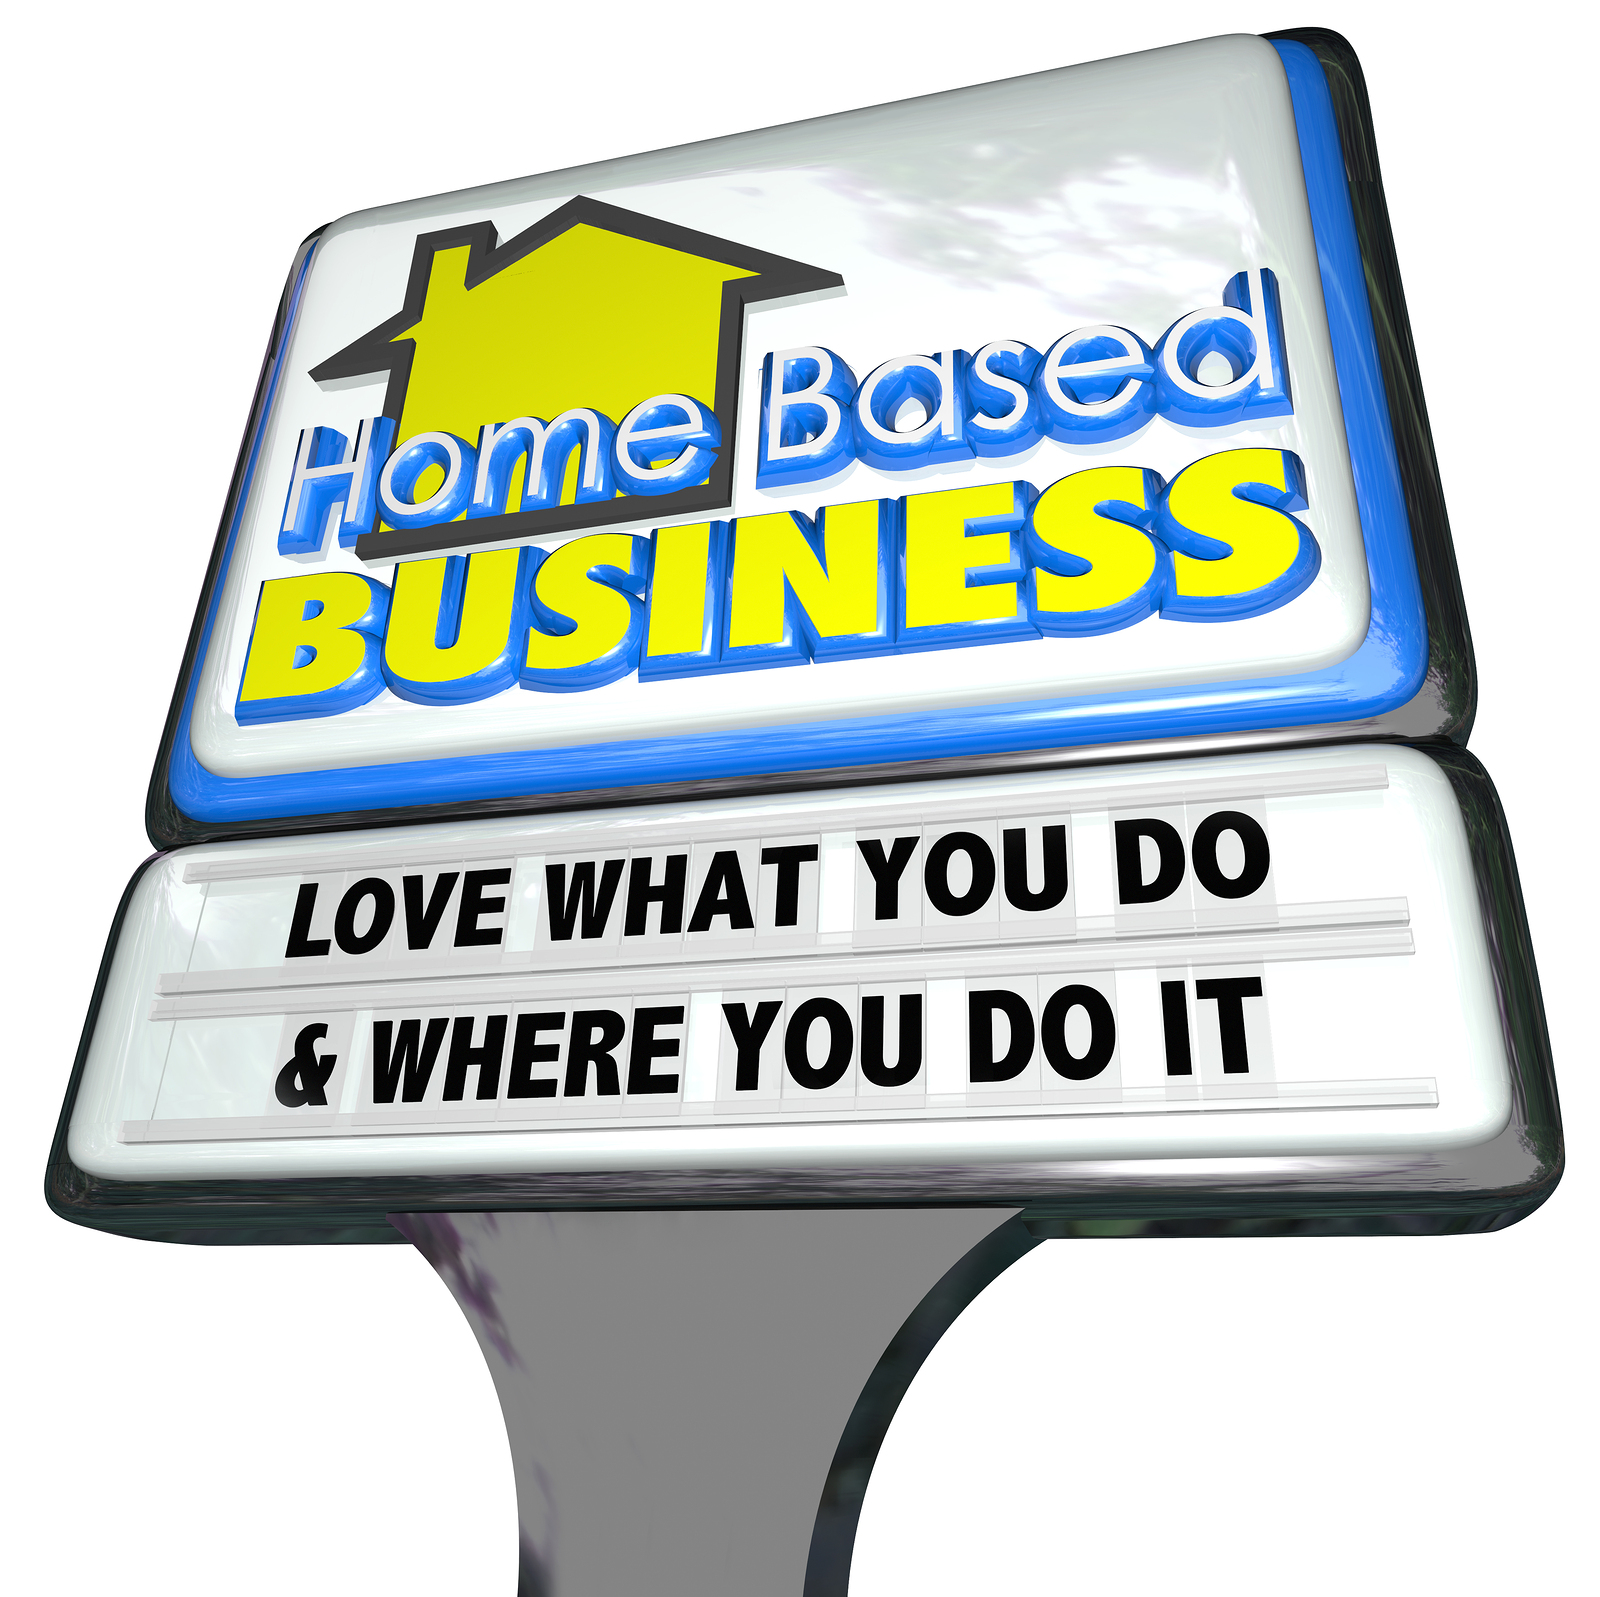 SET GOALS TO HAVE THE BEST HOME BUSINESS IDEA IN THE UK